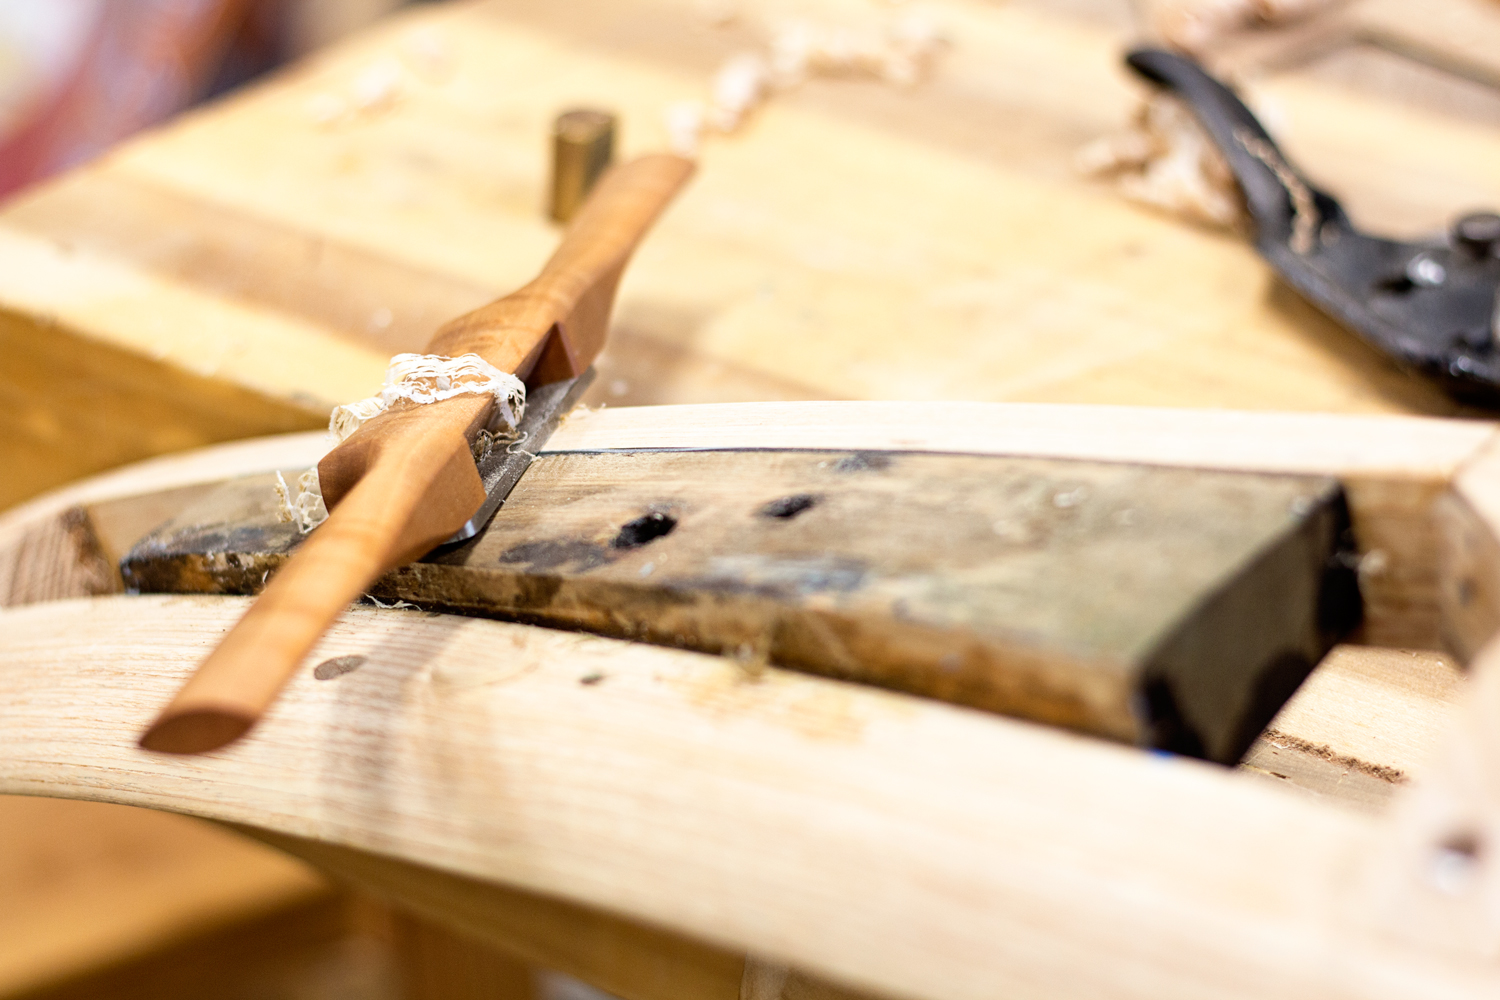 I'm smoothing transitions between wooden pieces using my Caleb James wooden spokeshave. I used this tool all over this project, putting the finishing touches on so many different areas.